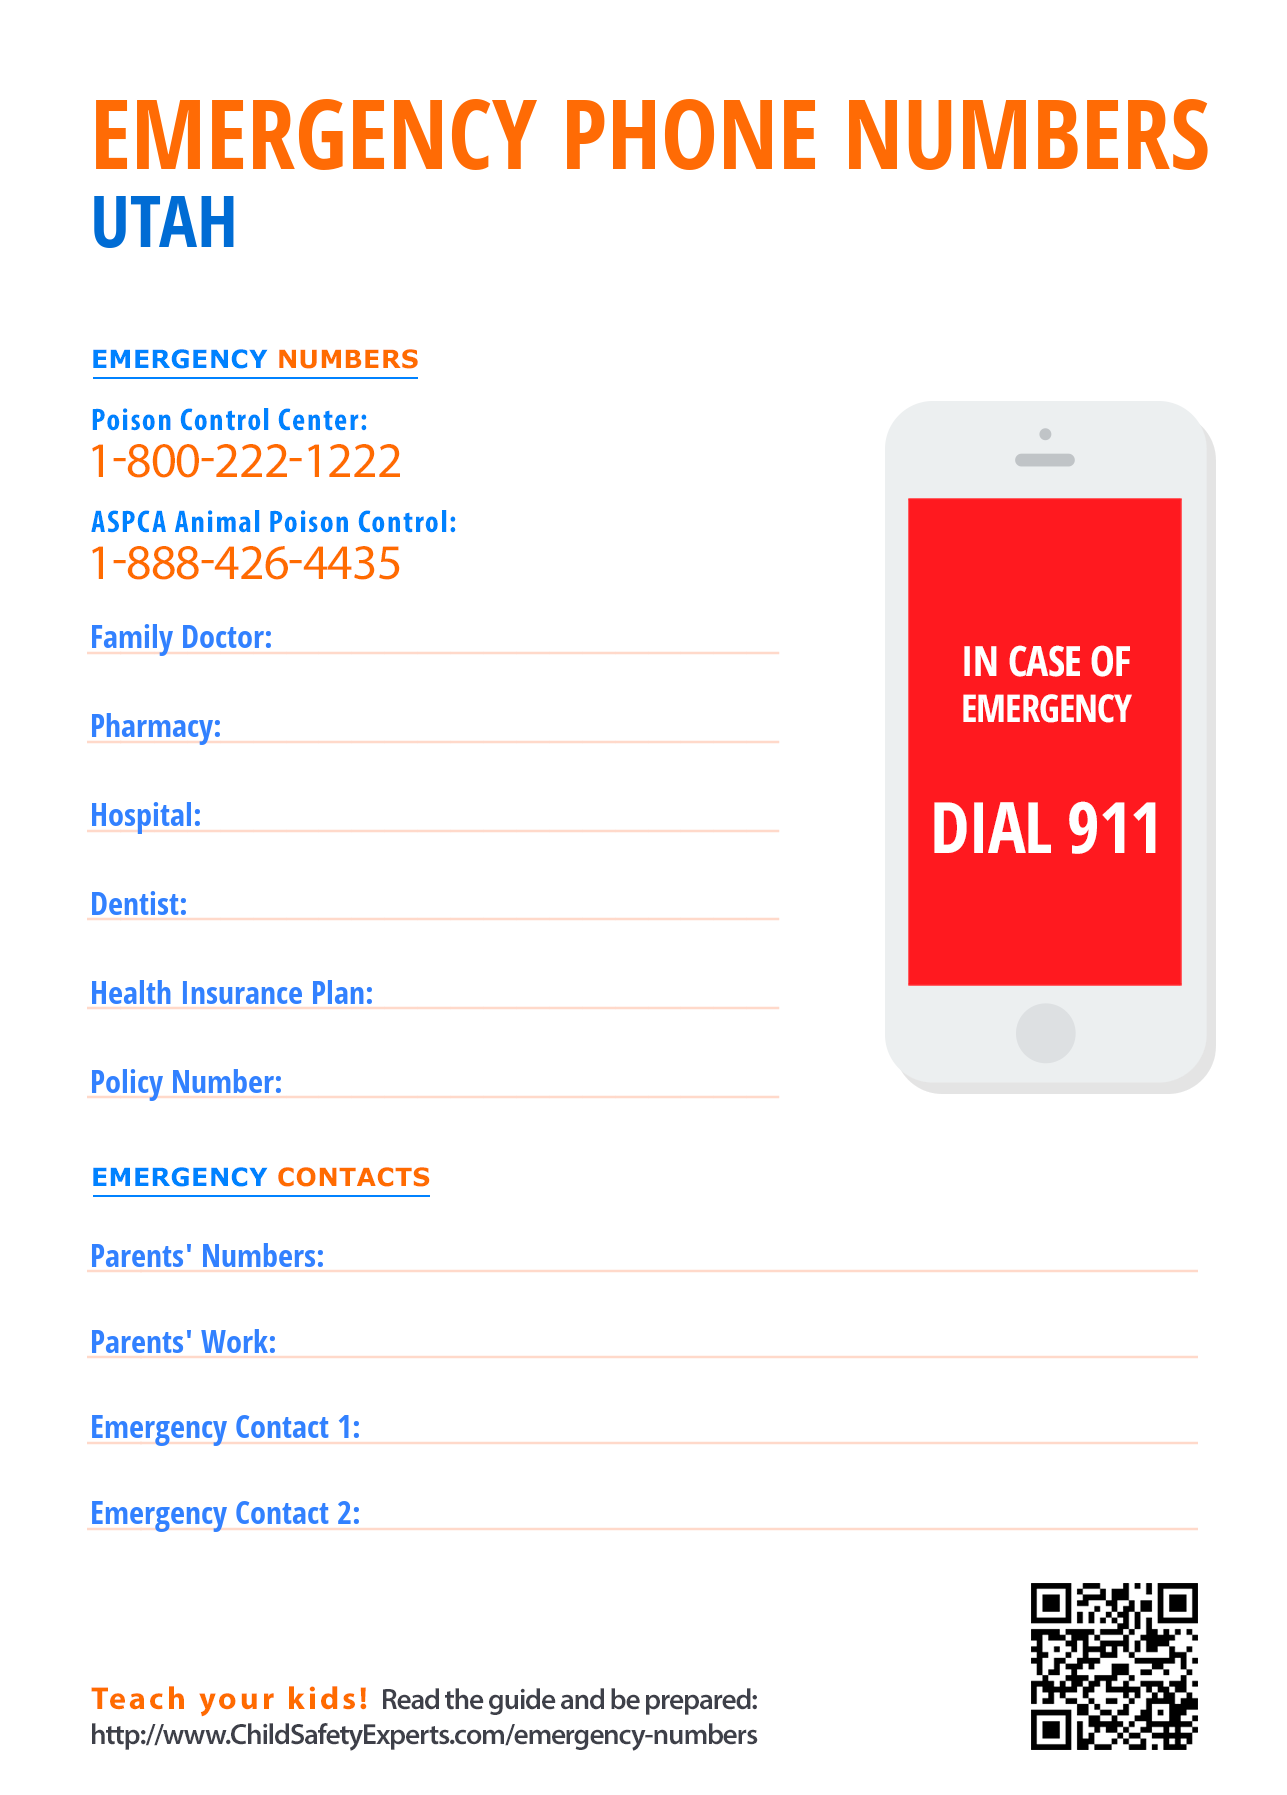 Important emergency phone numbers in Utah